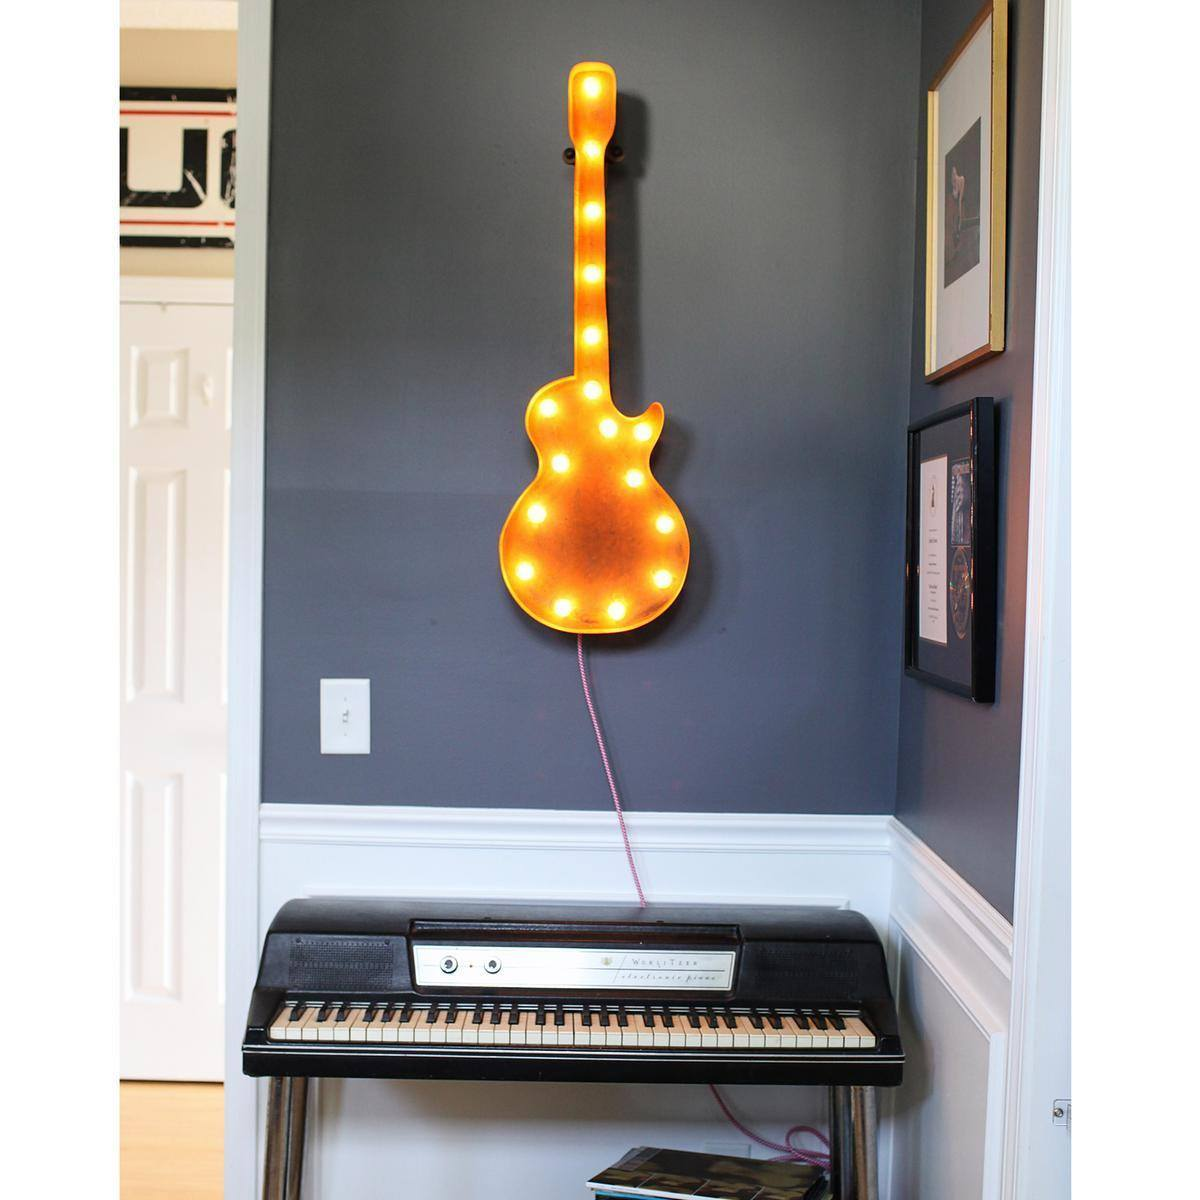 36 Large Guitar Vintage Marquee Sign With Lights Rustic